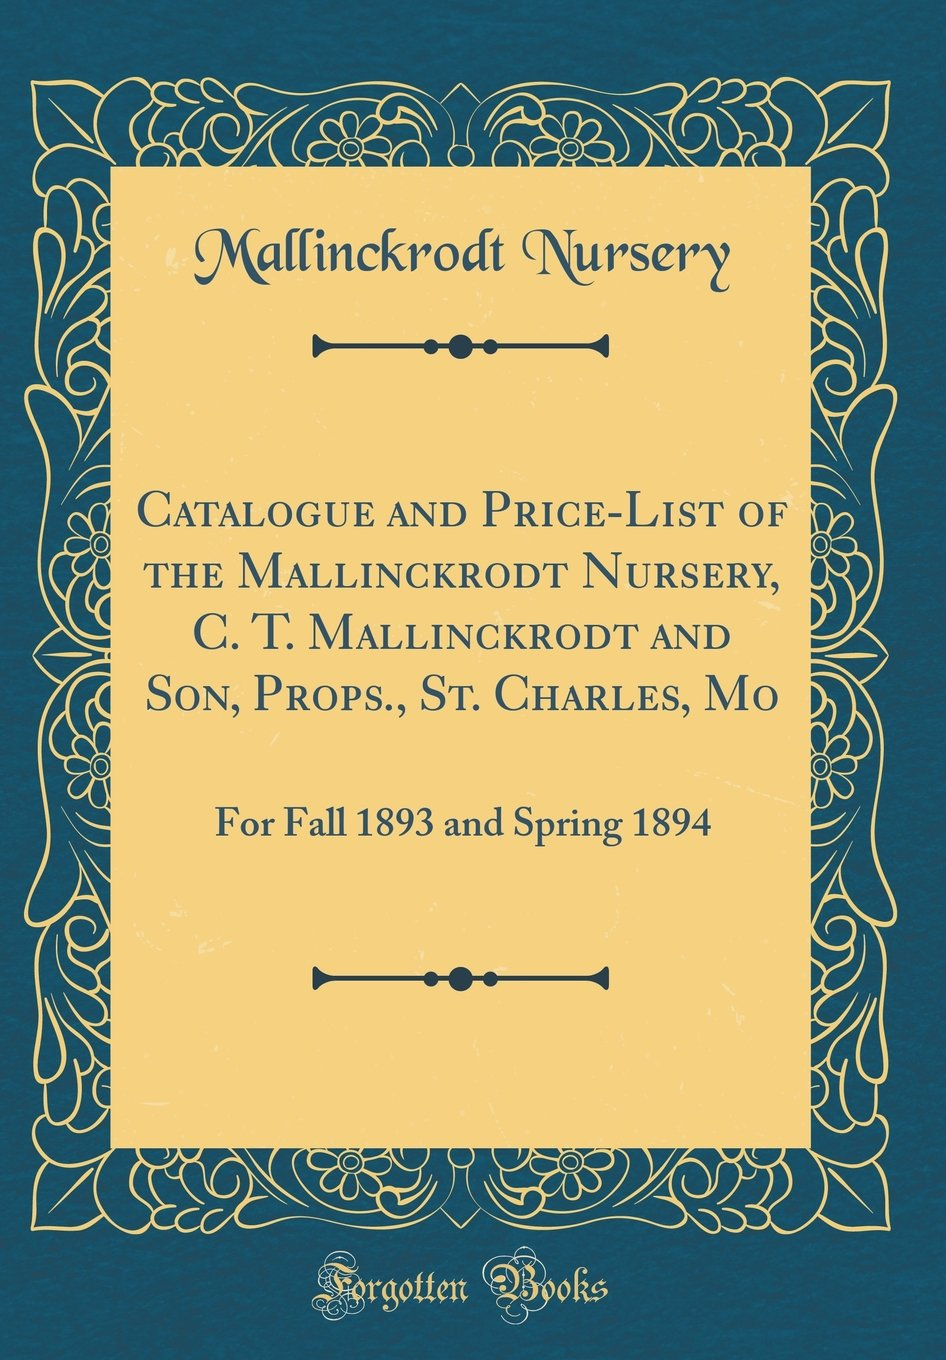 Download Catalogue and Price-List of the Mallinckrodt Nursery, C. T. Mallinckrodt and Son, Props., St. Charles, Mo: For Fall 1893 and Spring 1894 (Classic Reprint) ebook